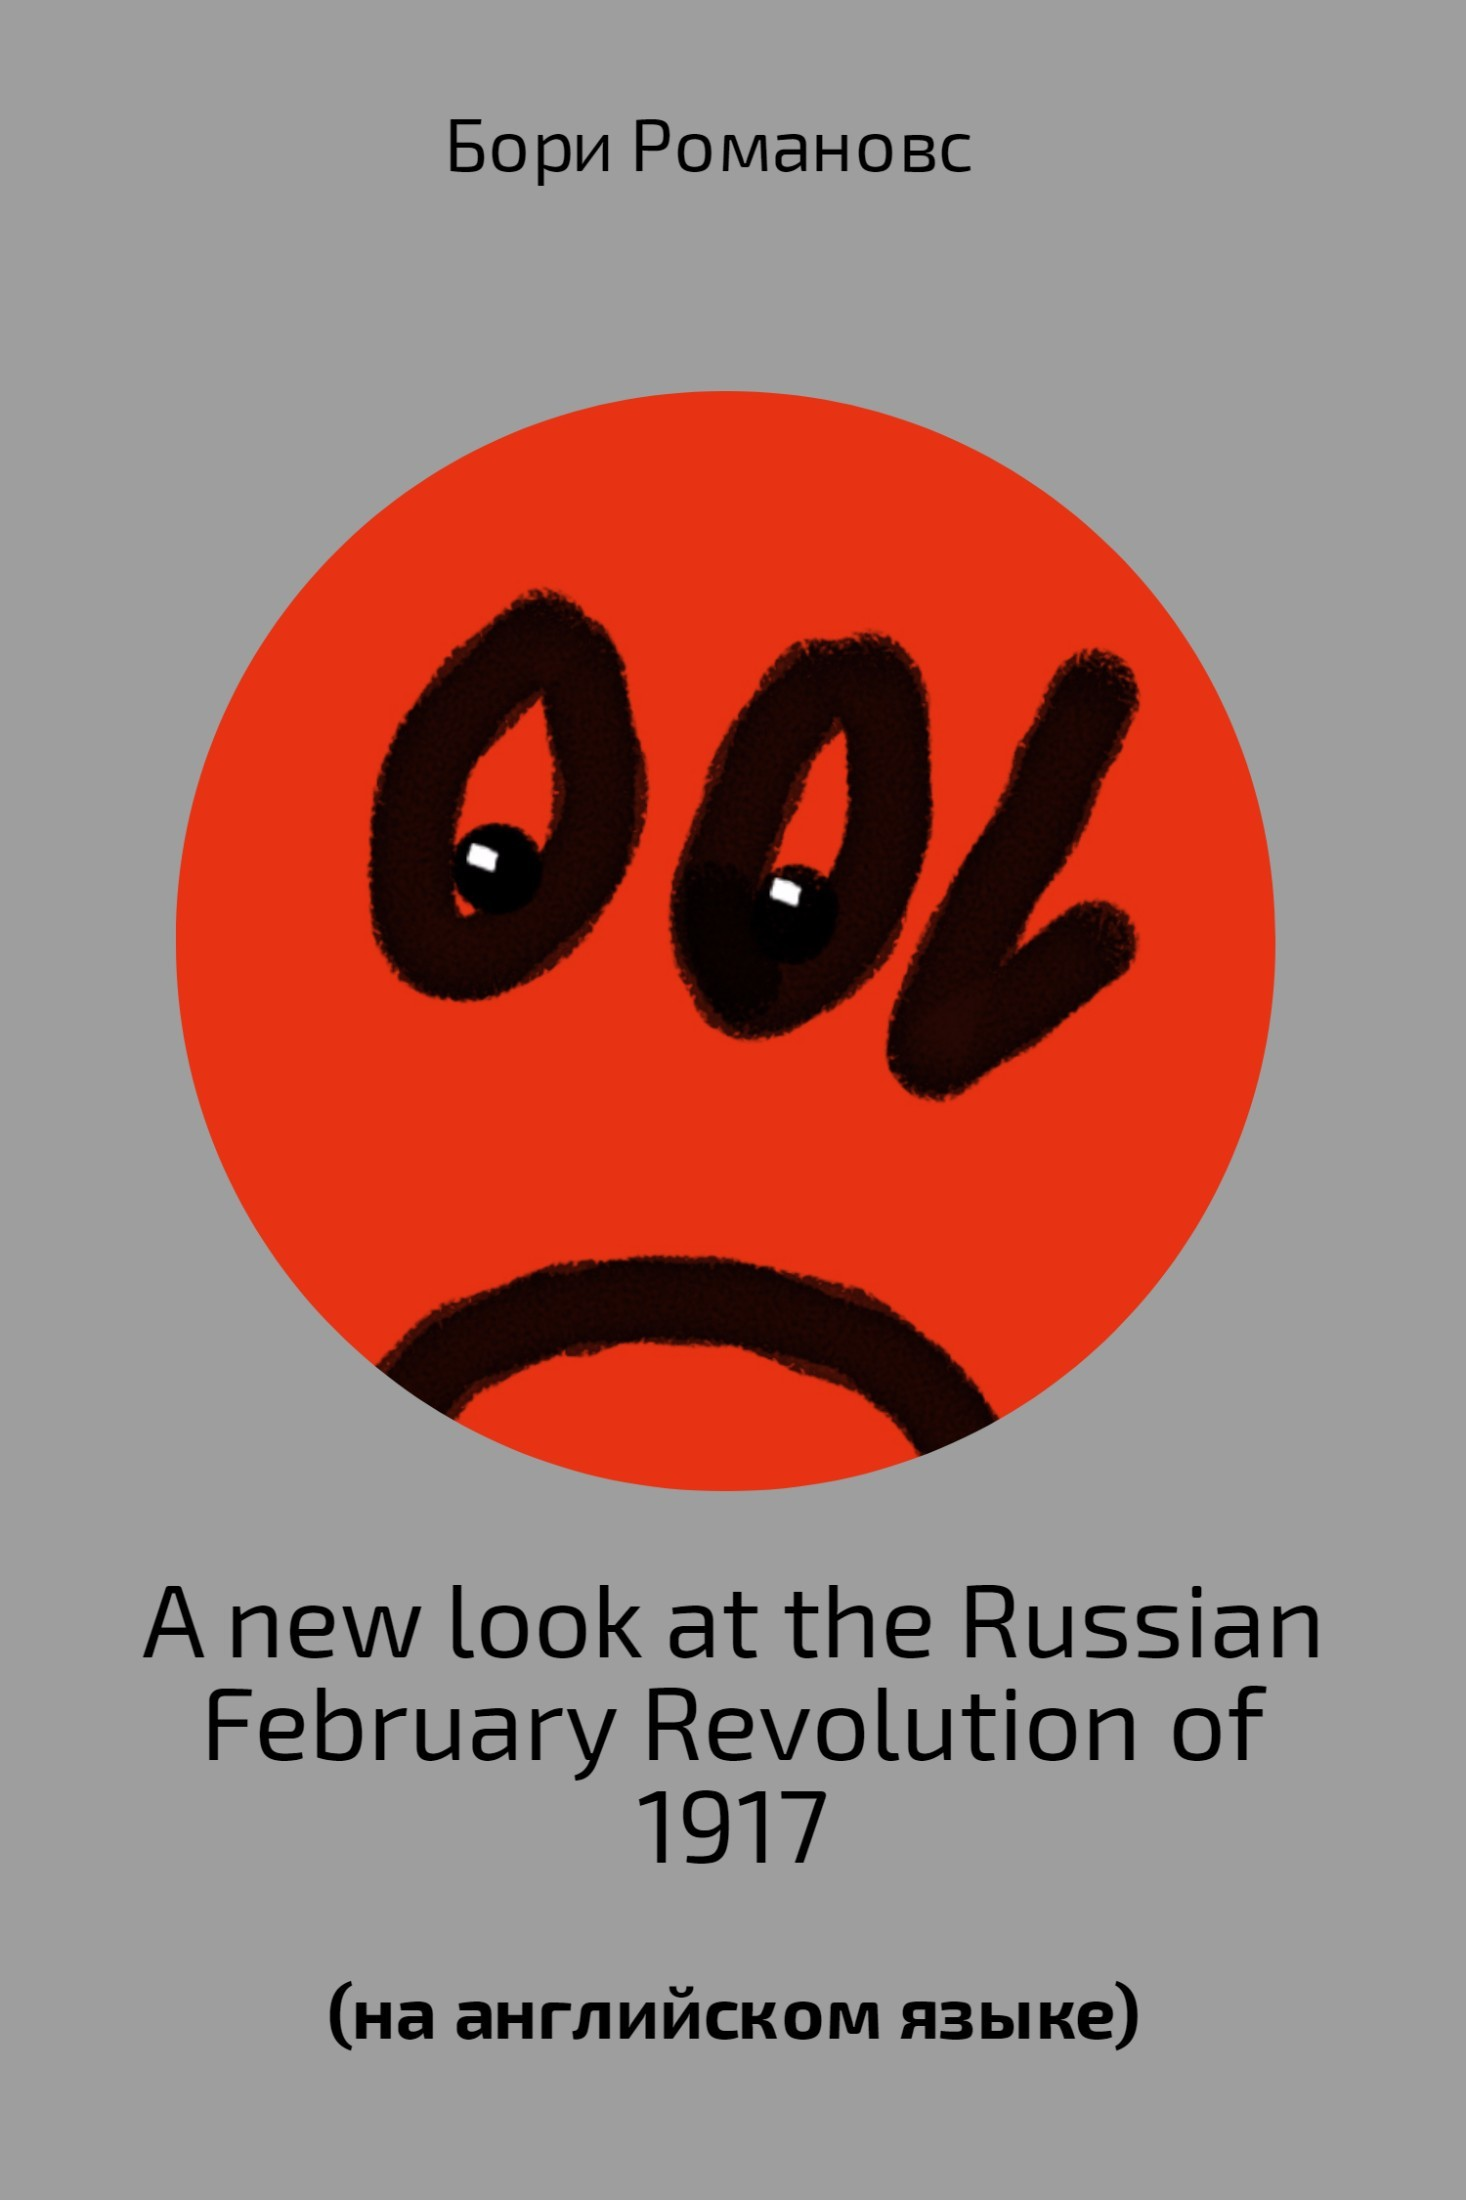 A new look at the Russian February Revolution of 1917 – Борис Романов